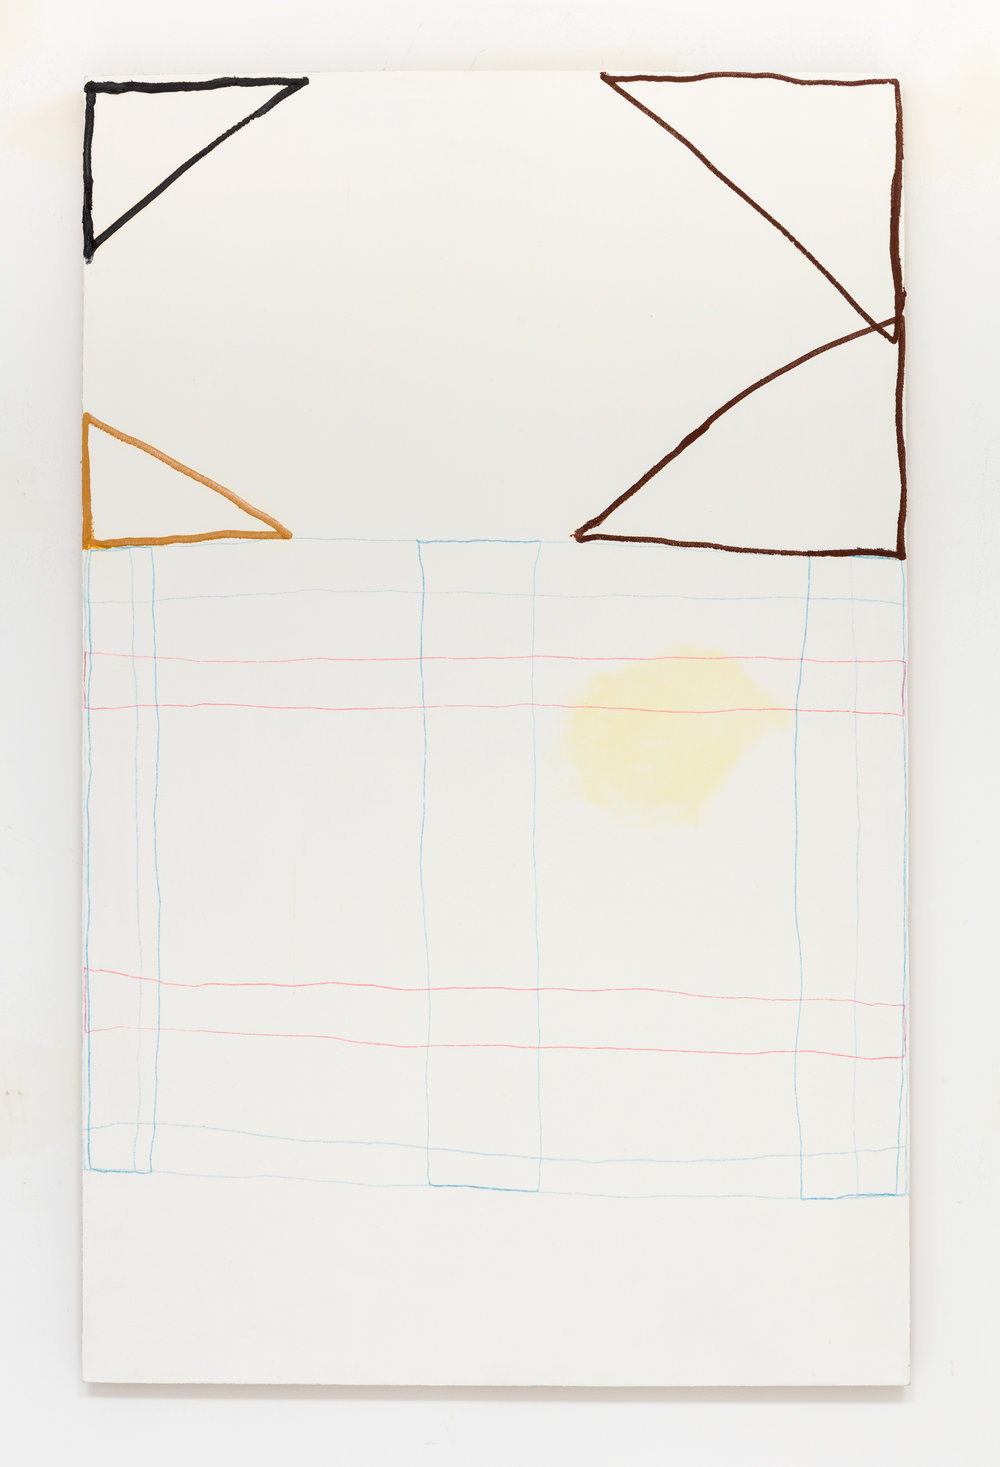 Michael Blair, Untitled 9 (2015), oil and marker on linen, 48 x 30 inches